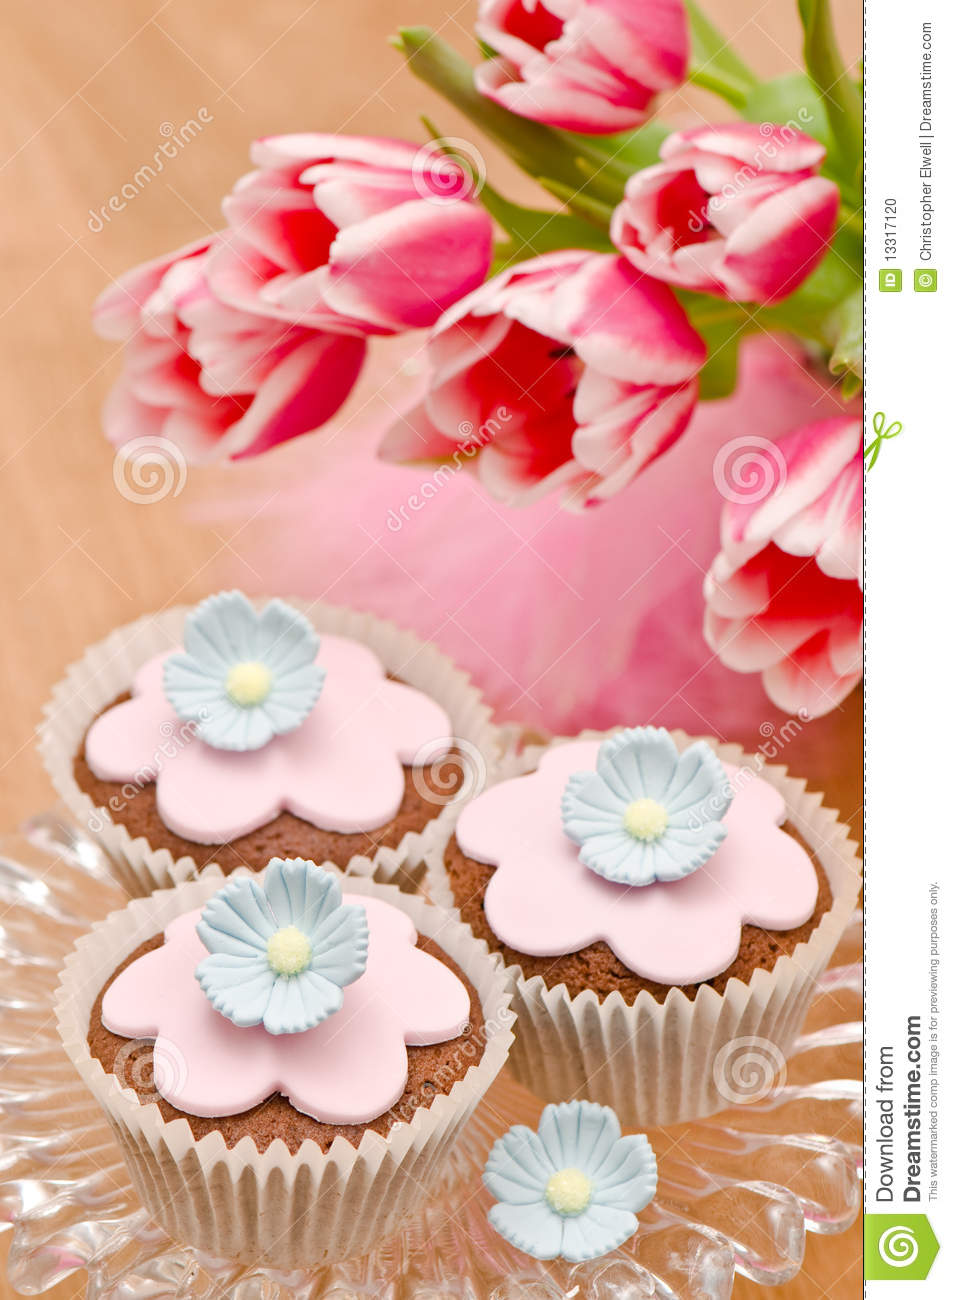 Mothers Day Cupcakes Stock Photo Image 13317120